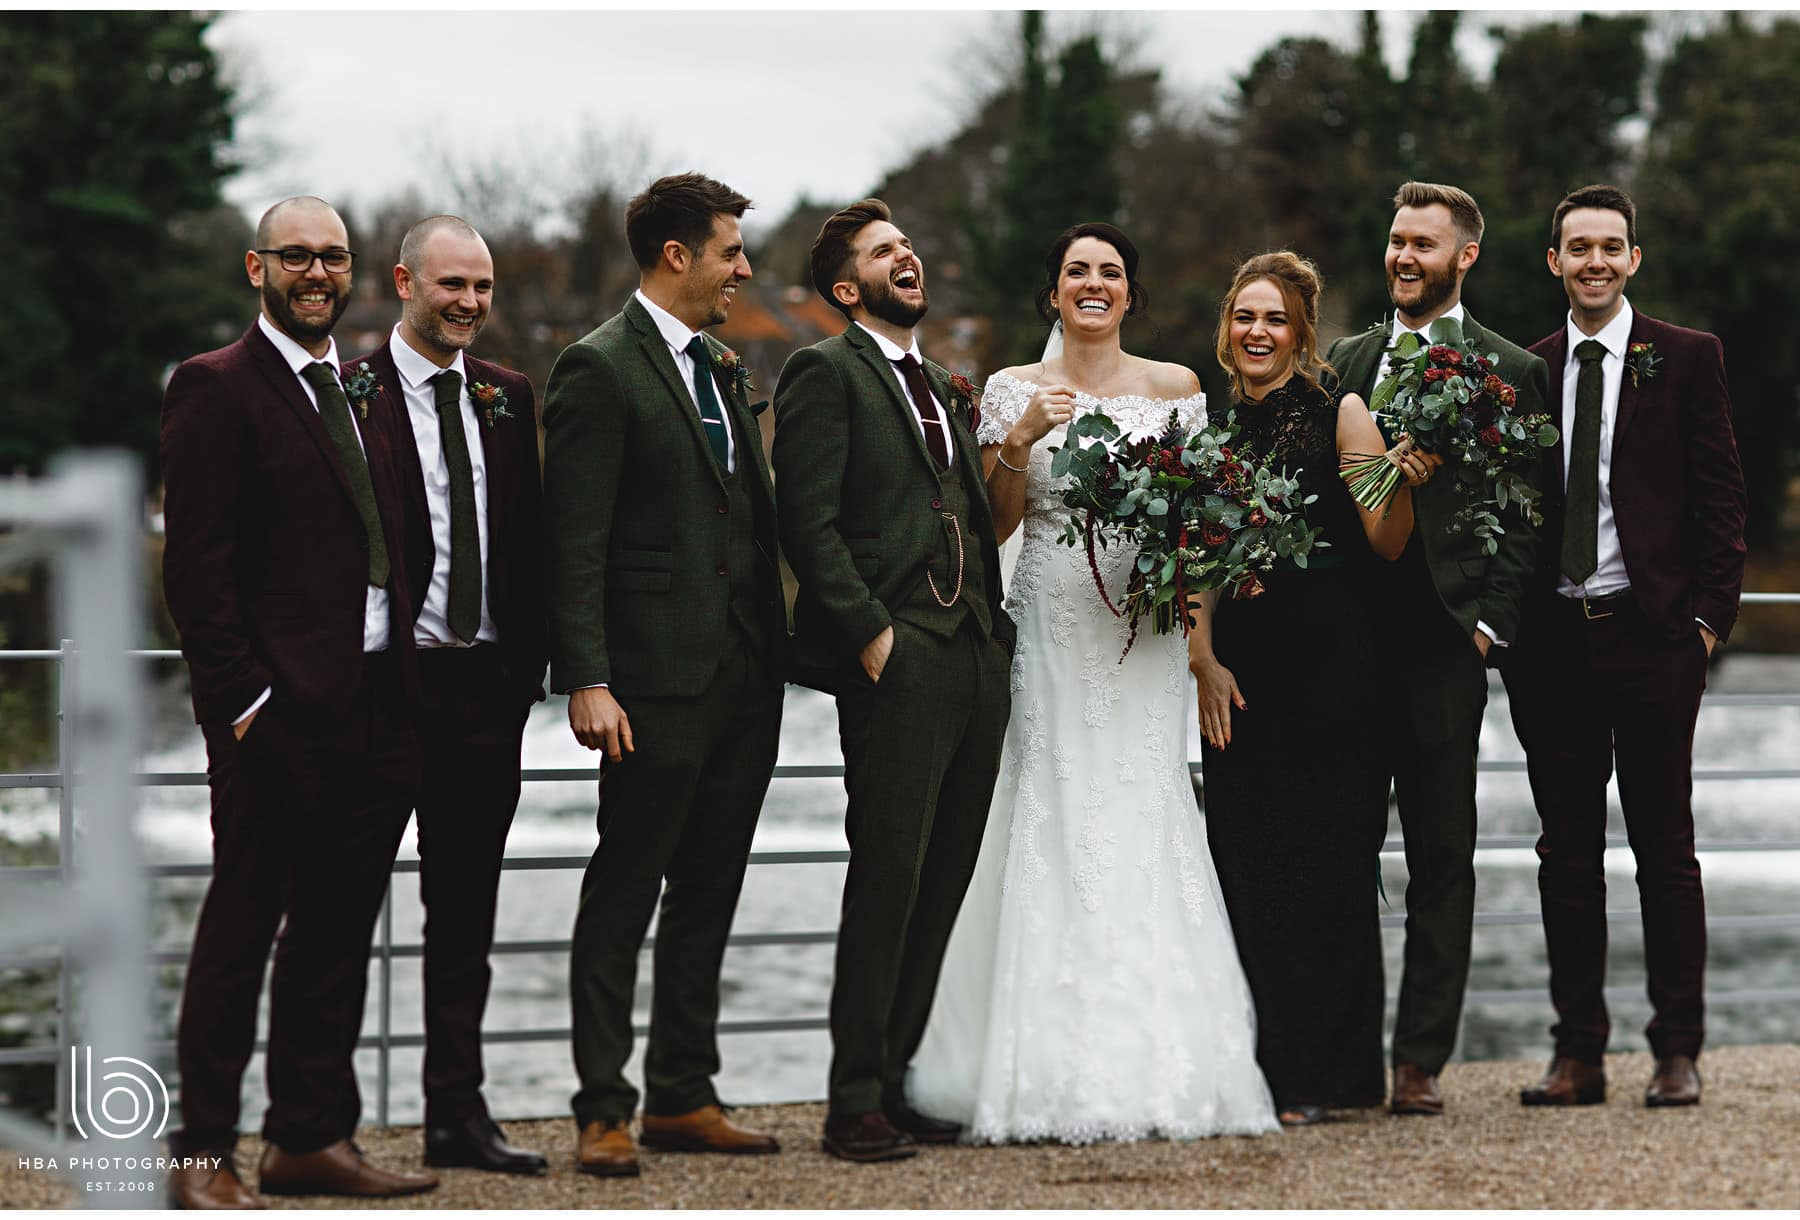 the bride & groom with the bridal party laughing